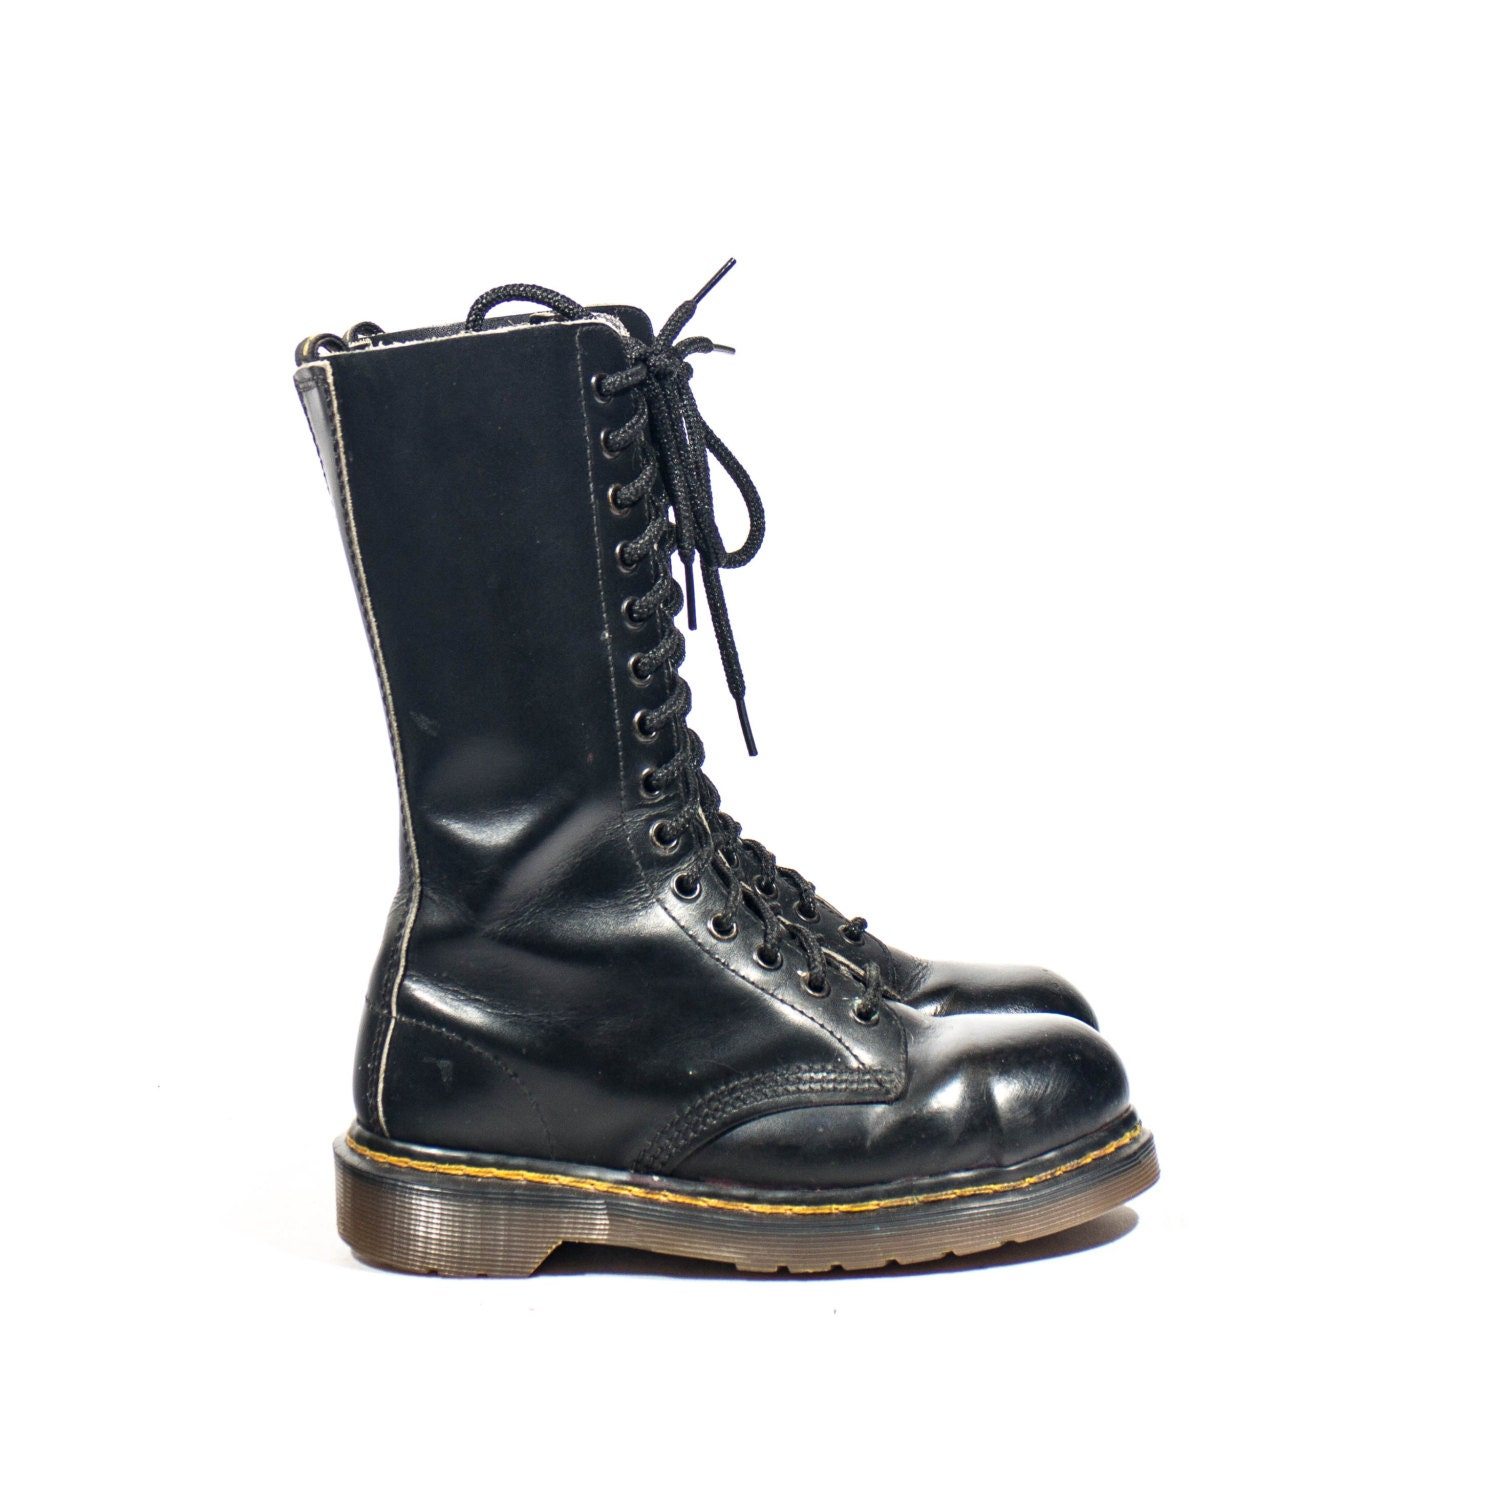 14 eye steel toe doc martens black romper by